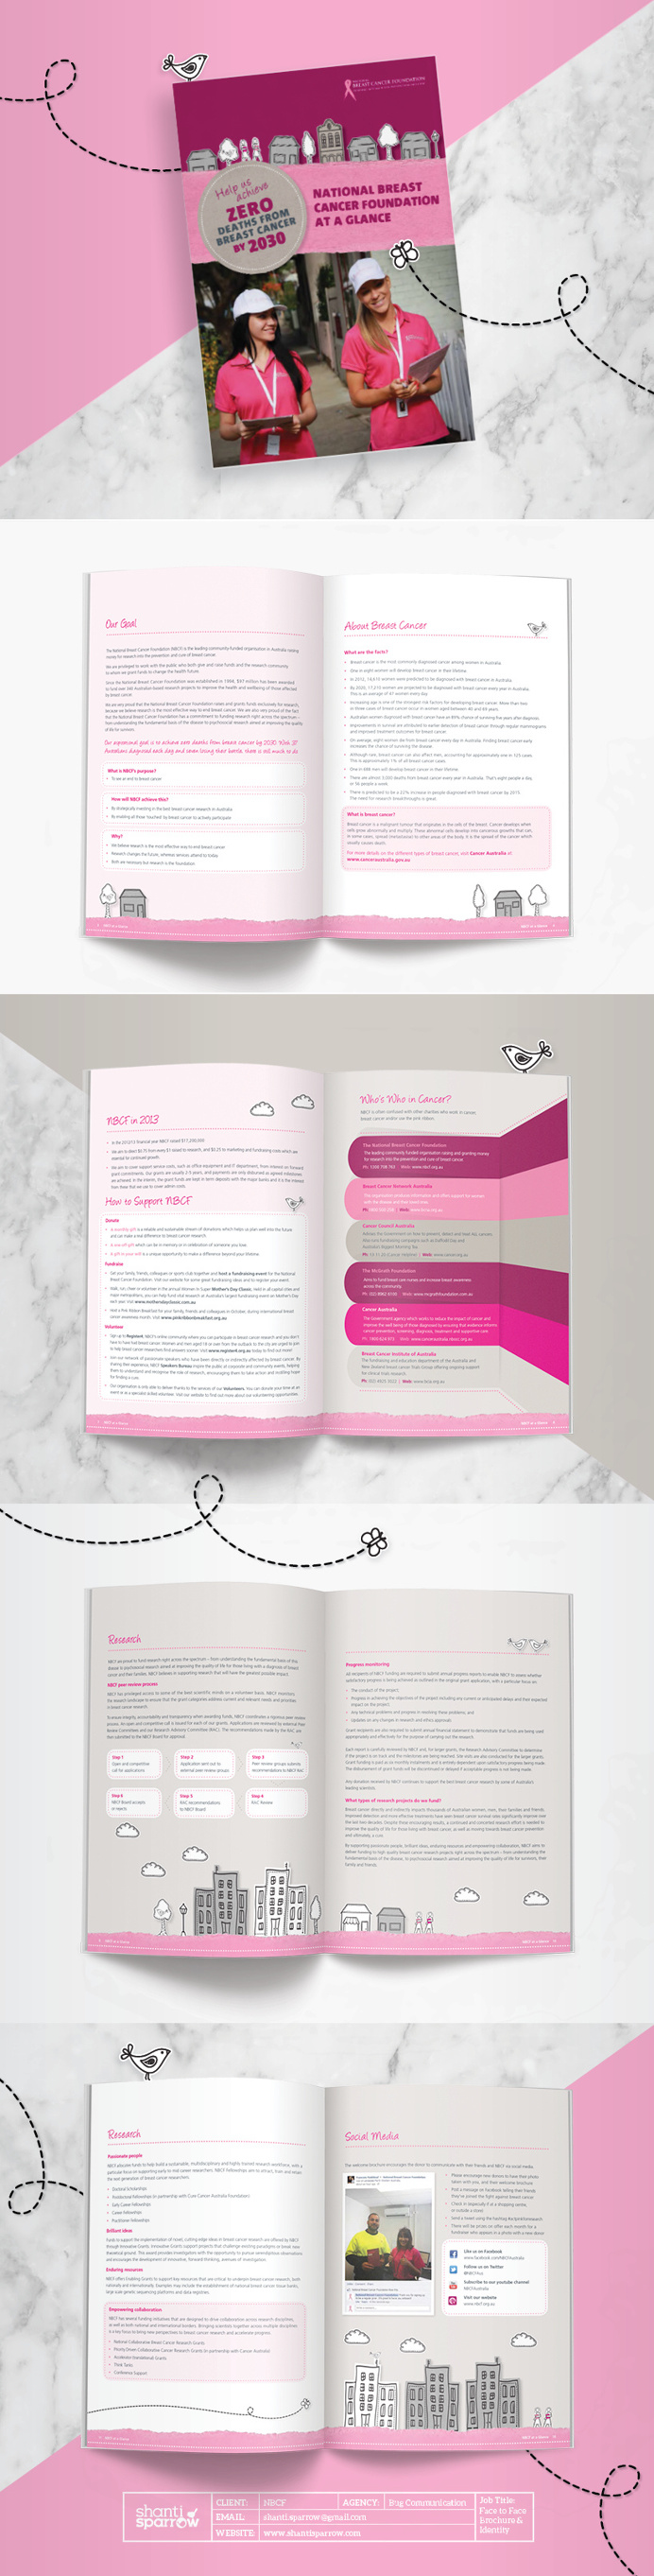 Design by Shanti Sparrow Client: National breast Cancer Foundation Project Name: F2F Identity #Design #graphicdesign #illustration #layout